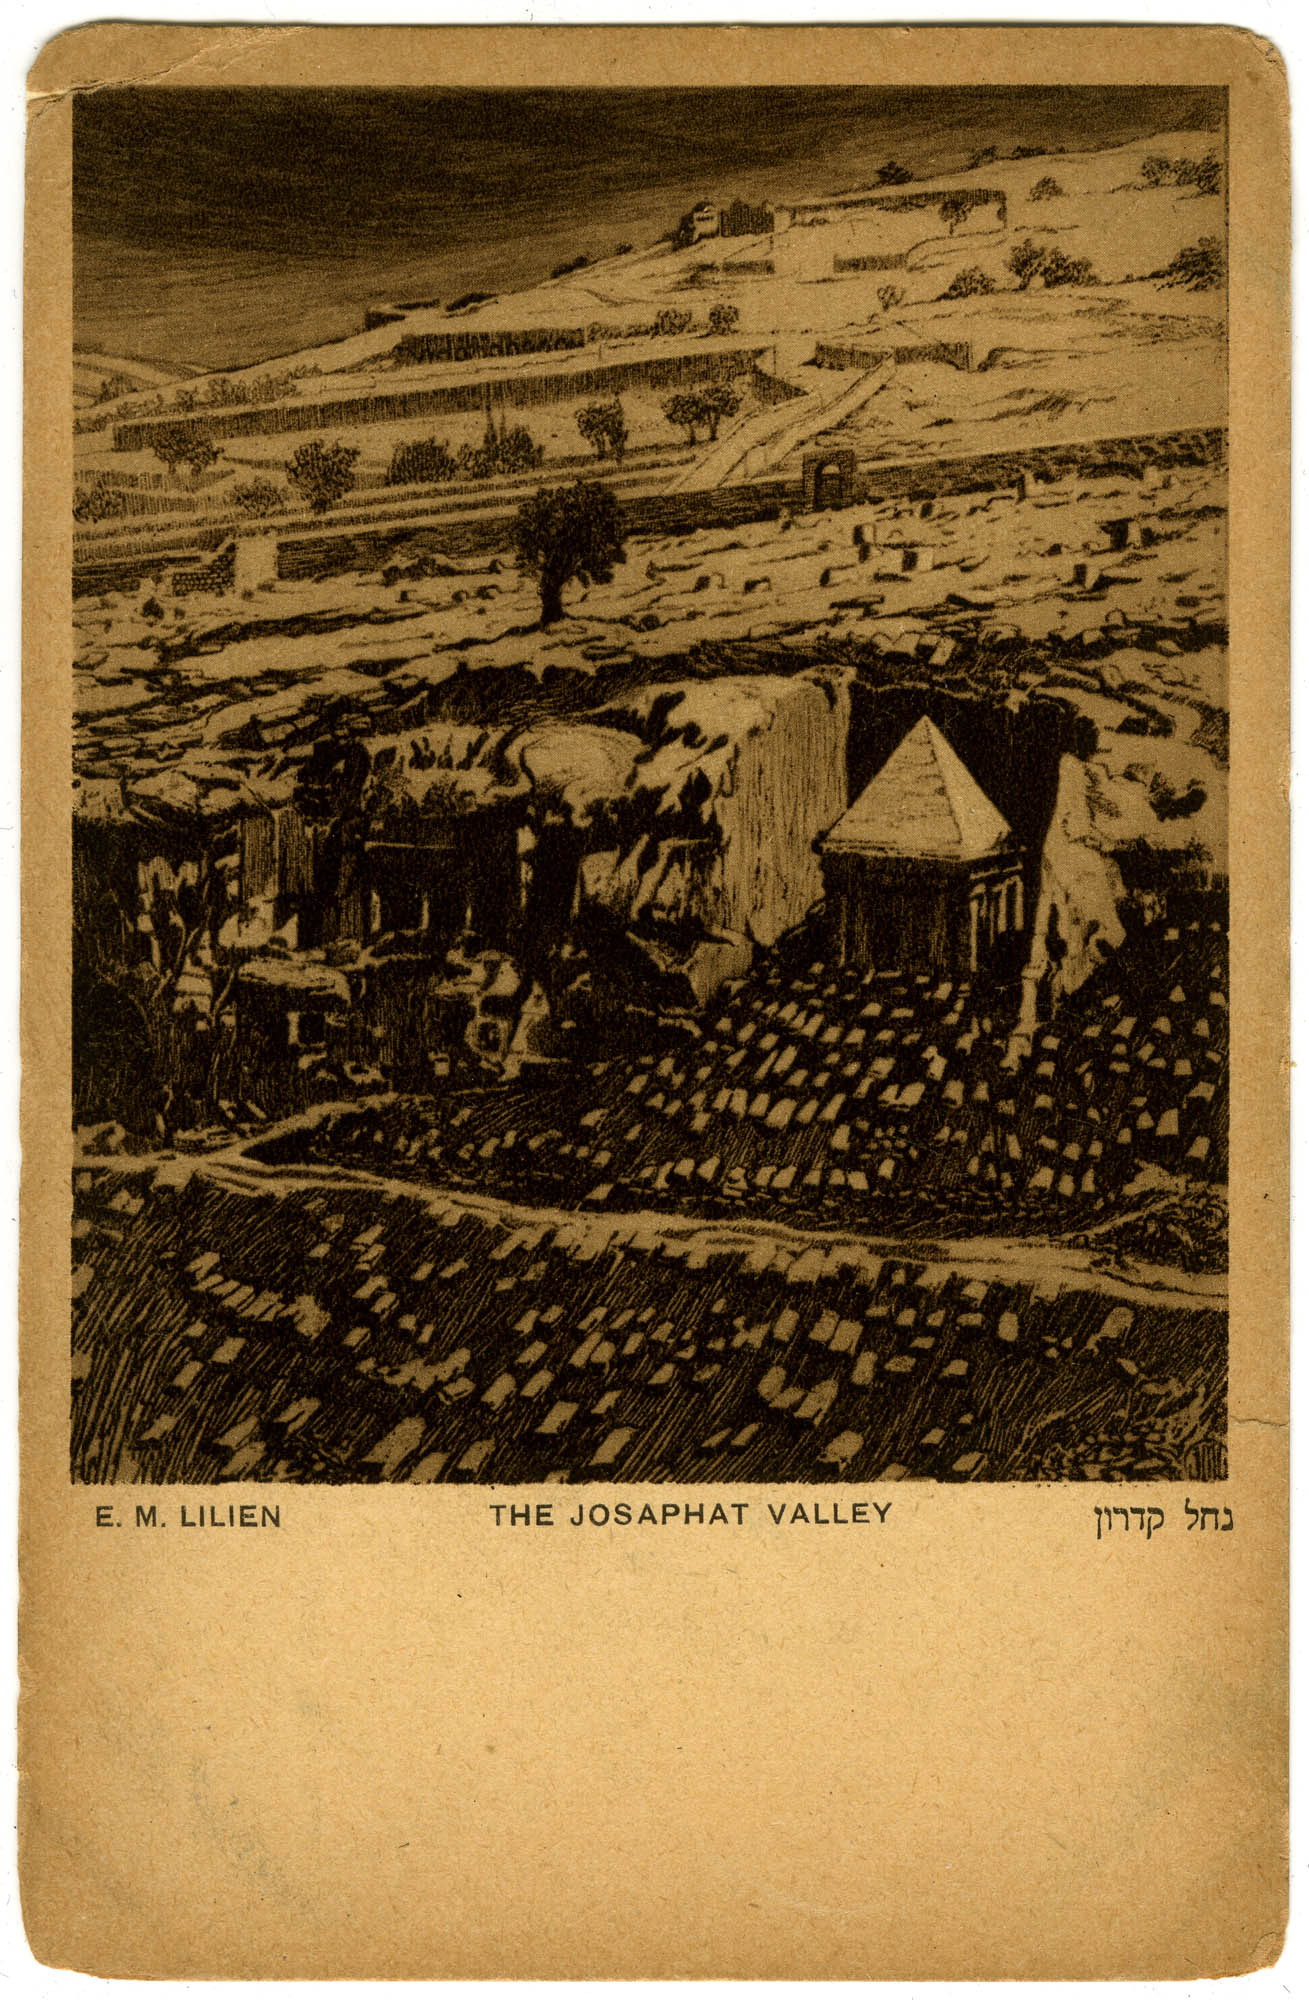 The Josaphat Valley / נחל קדרון